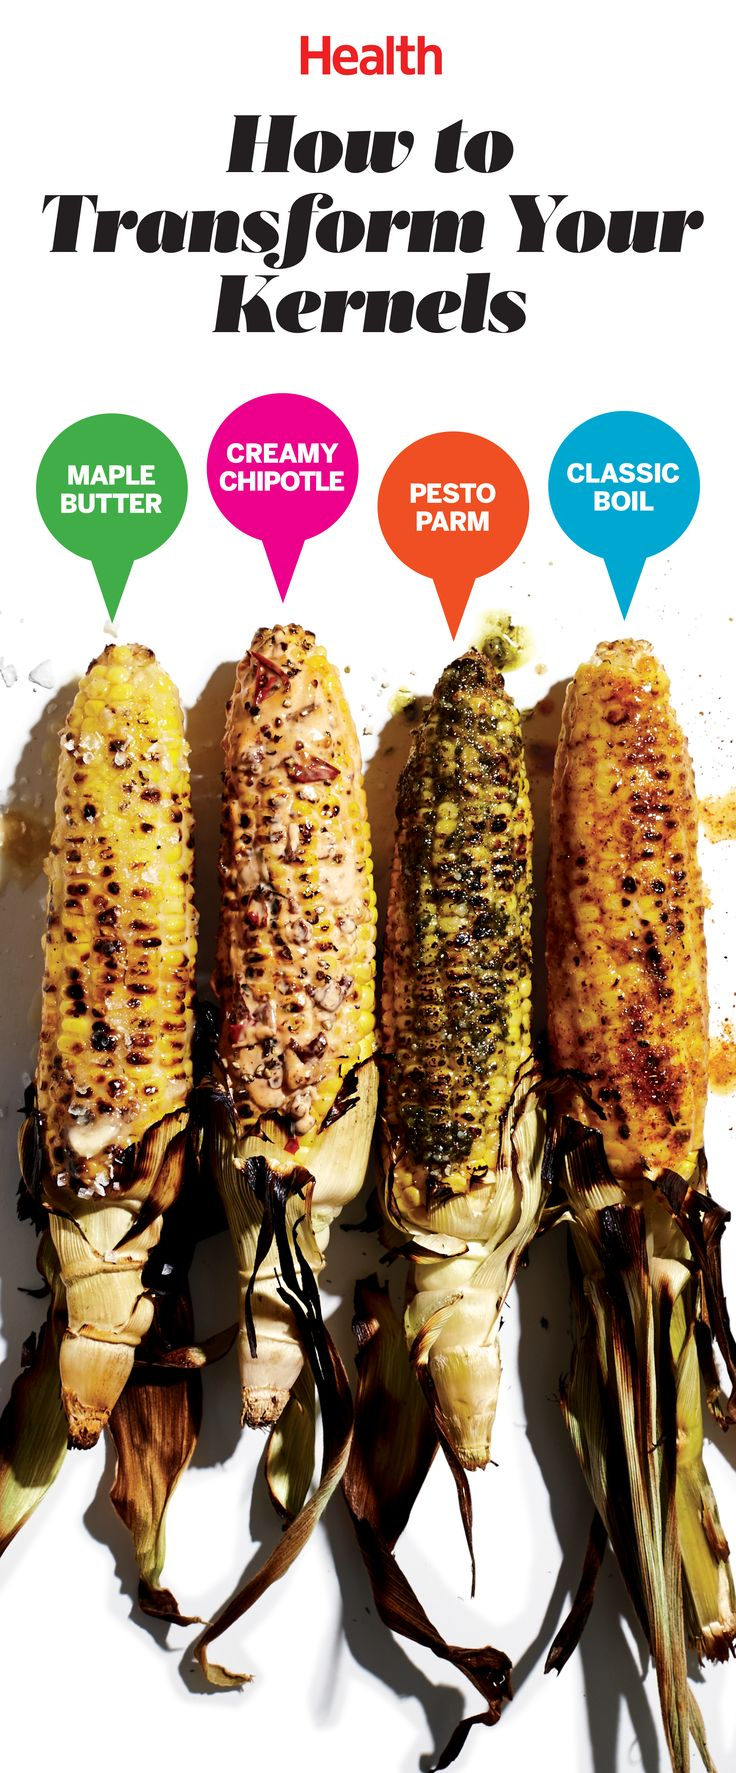 4 delicious fresh corn recipes to update your corn on the cob this summer | Health.com